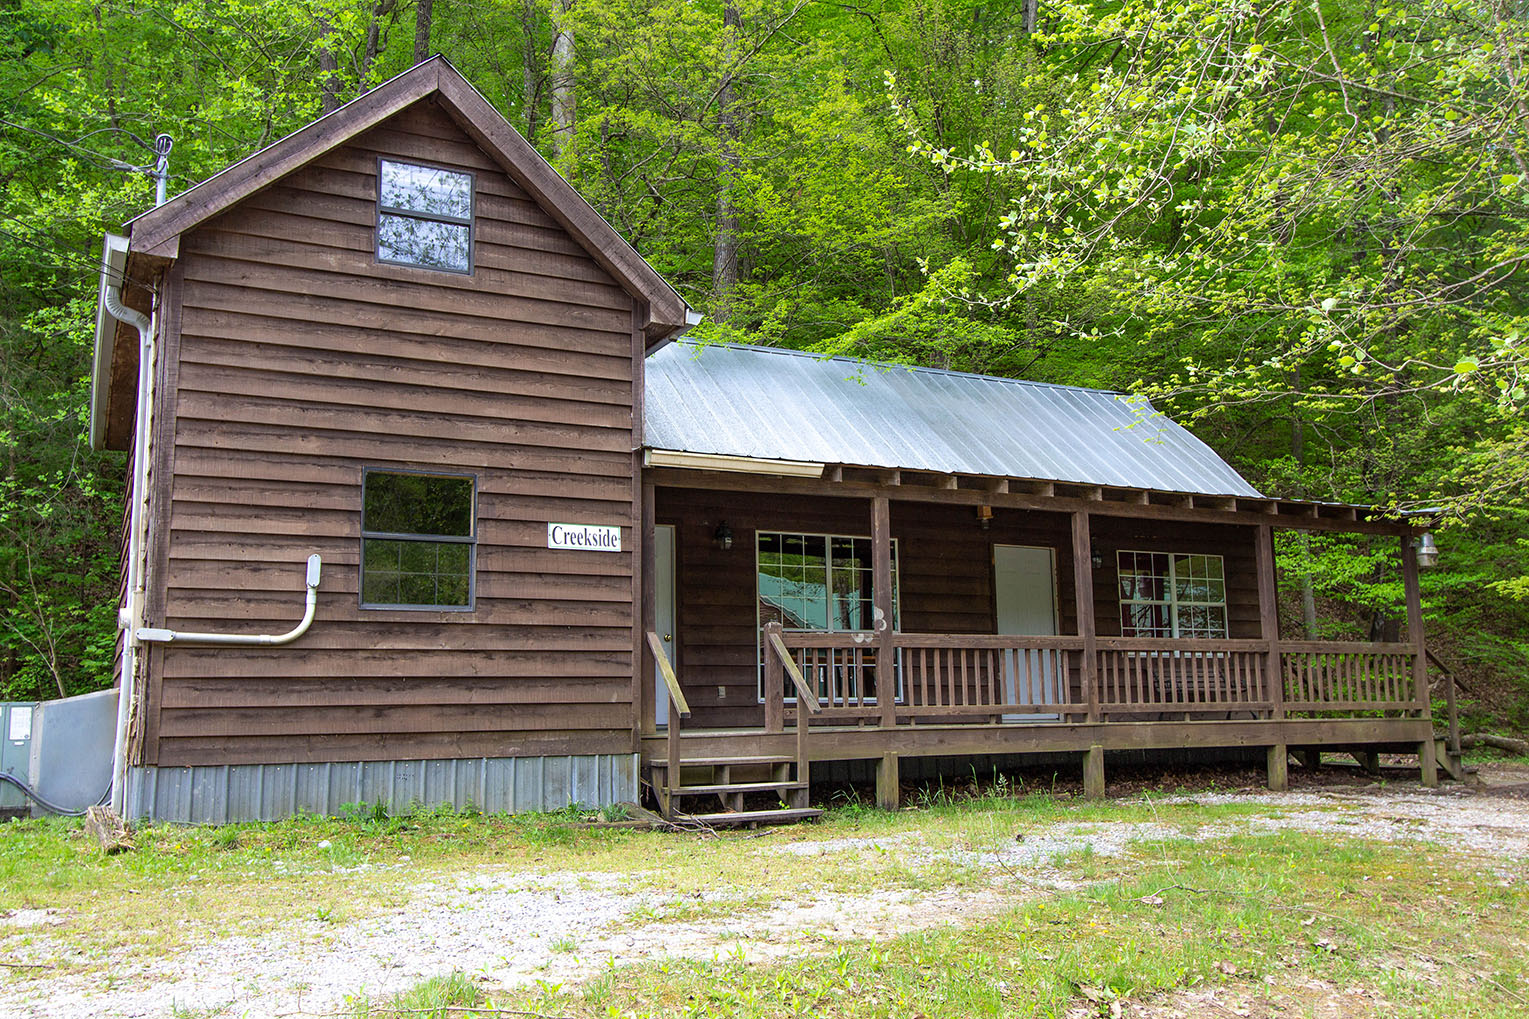 Creekside Exterior.jpg